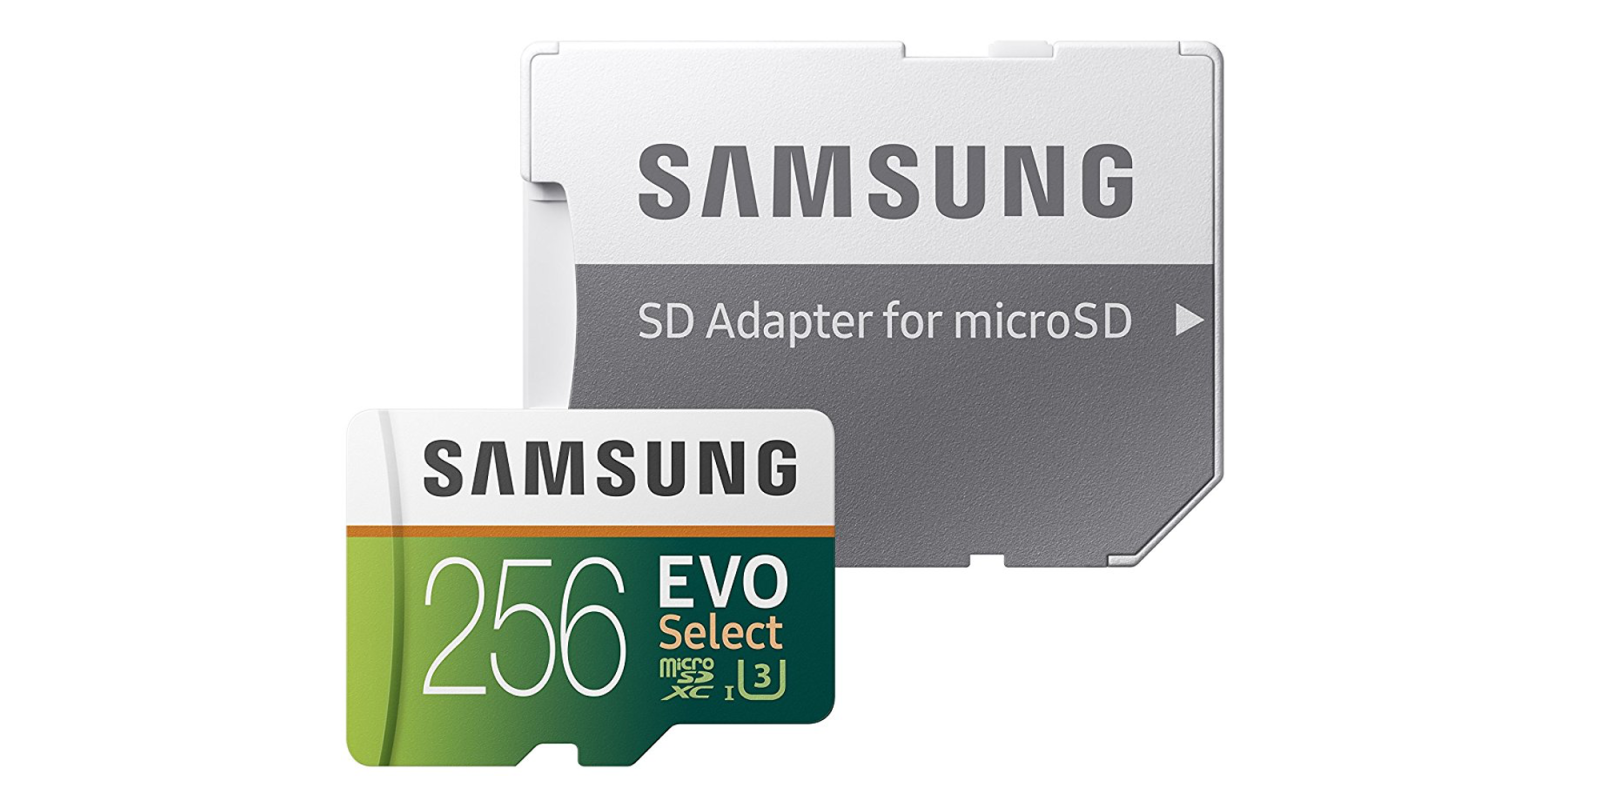 Samsung's speedy EVO Select microSDXC cards are on sale at Amazon: 256GB $40, more